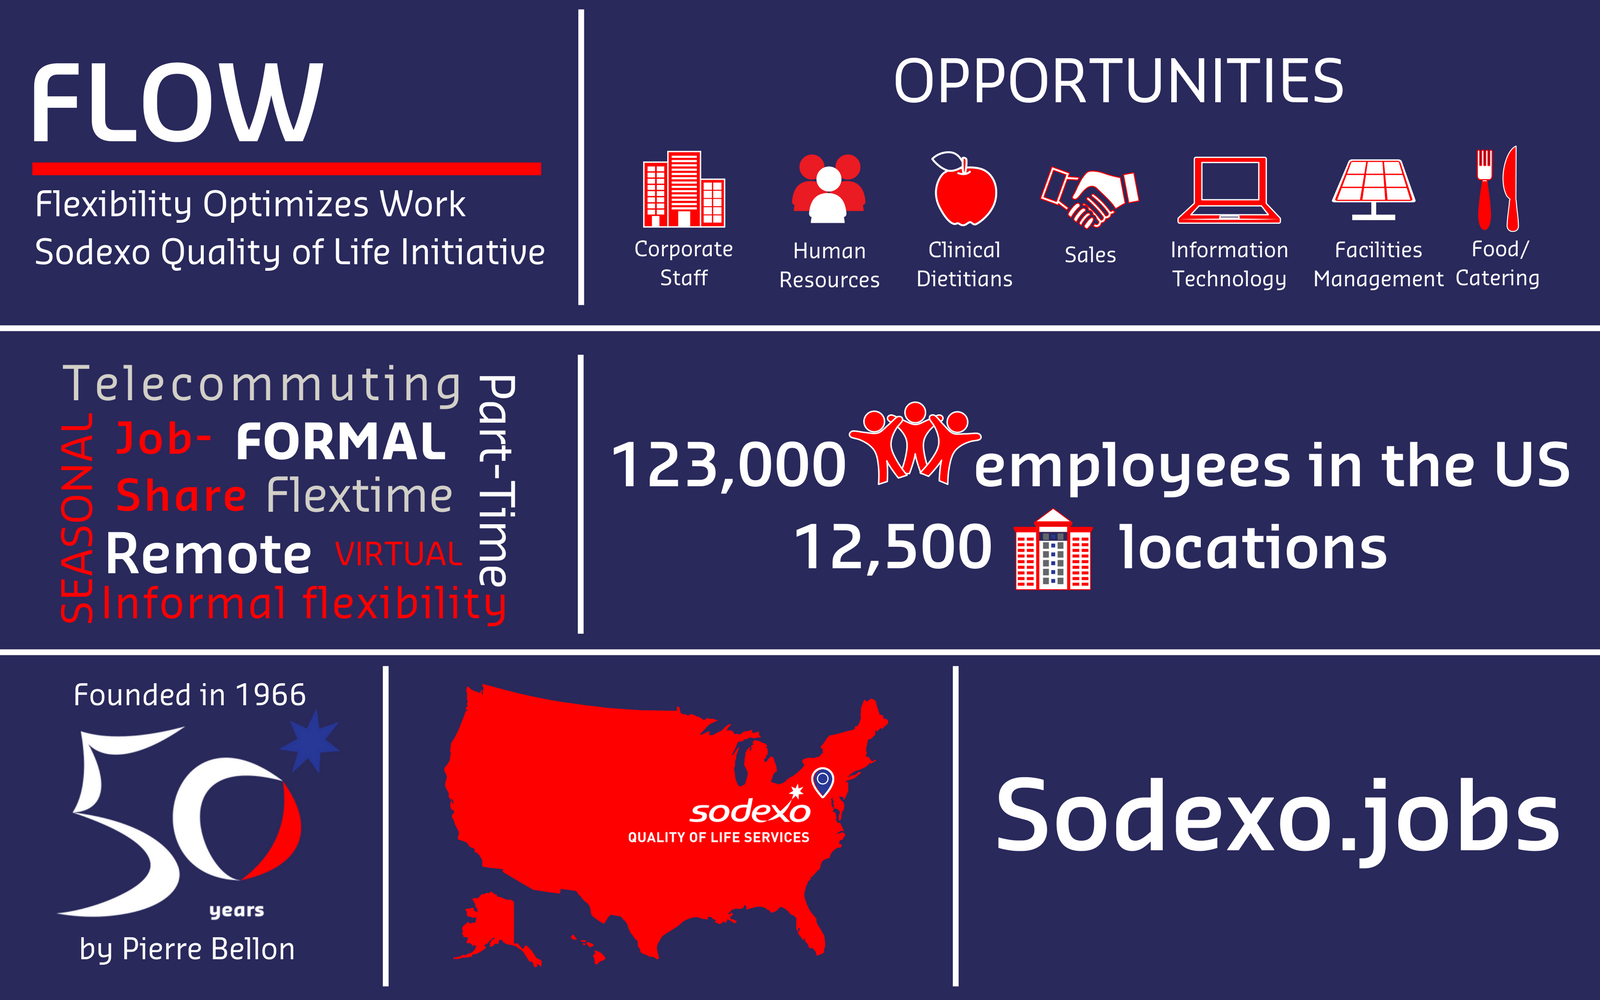 Sodexo Goes With the FLOW When It Comes To Workplace Flexibility